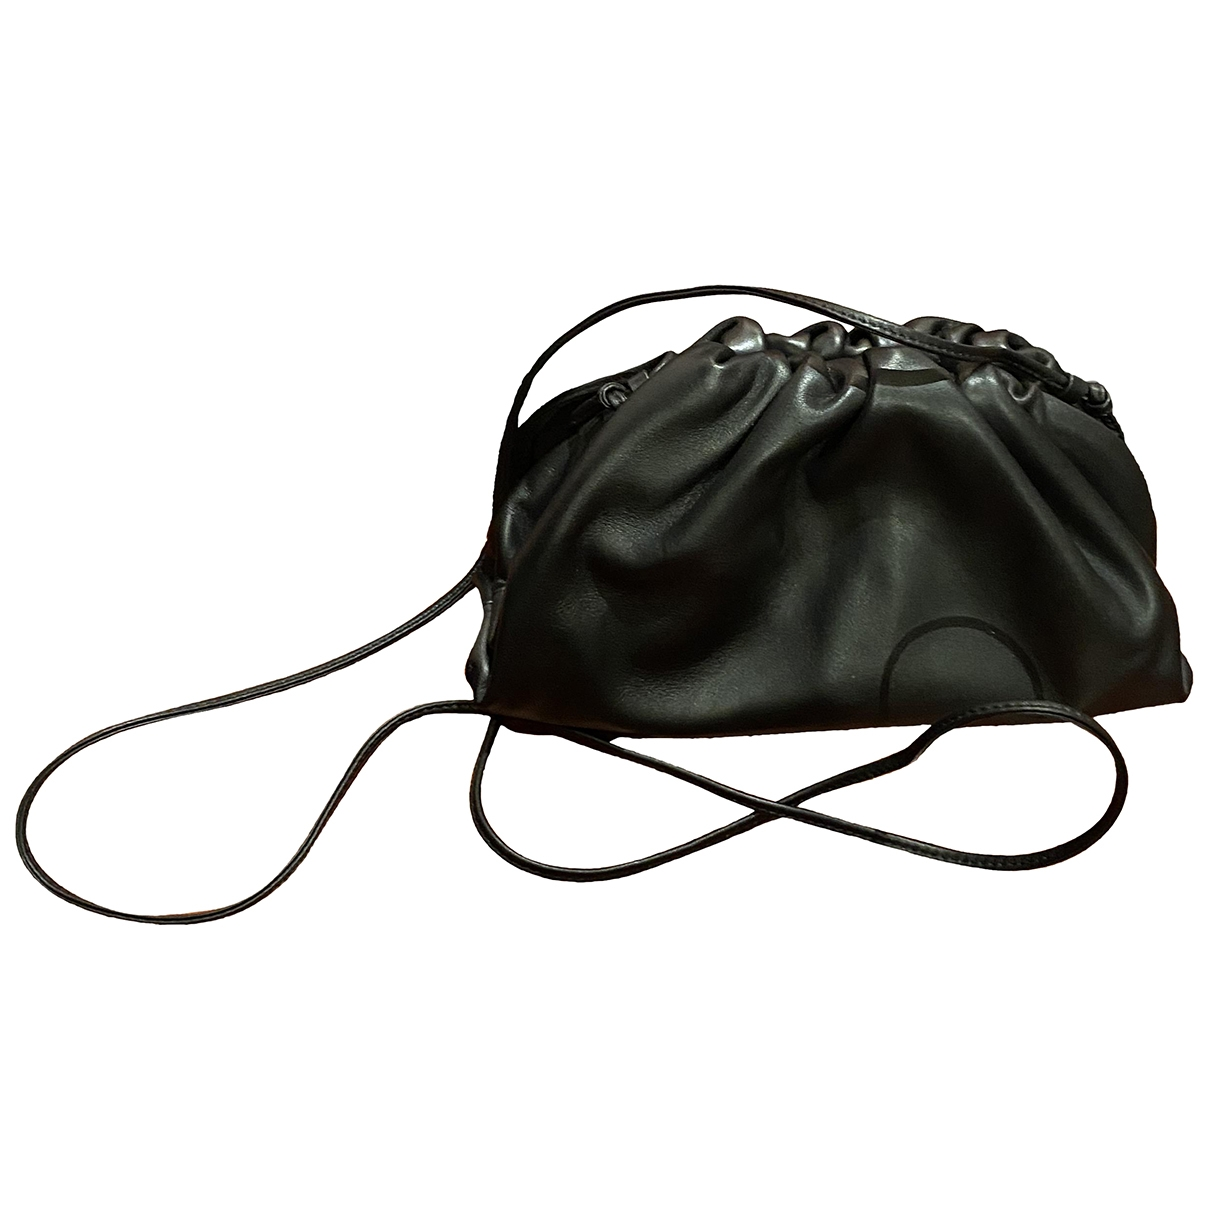 Bottega Veneta Pouch Black Leather handbag for Women \N